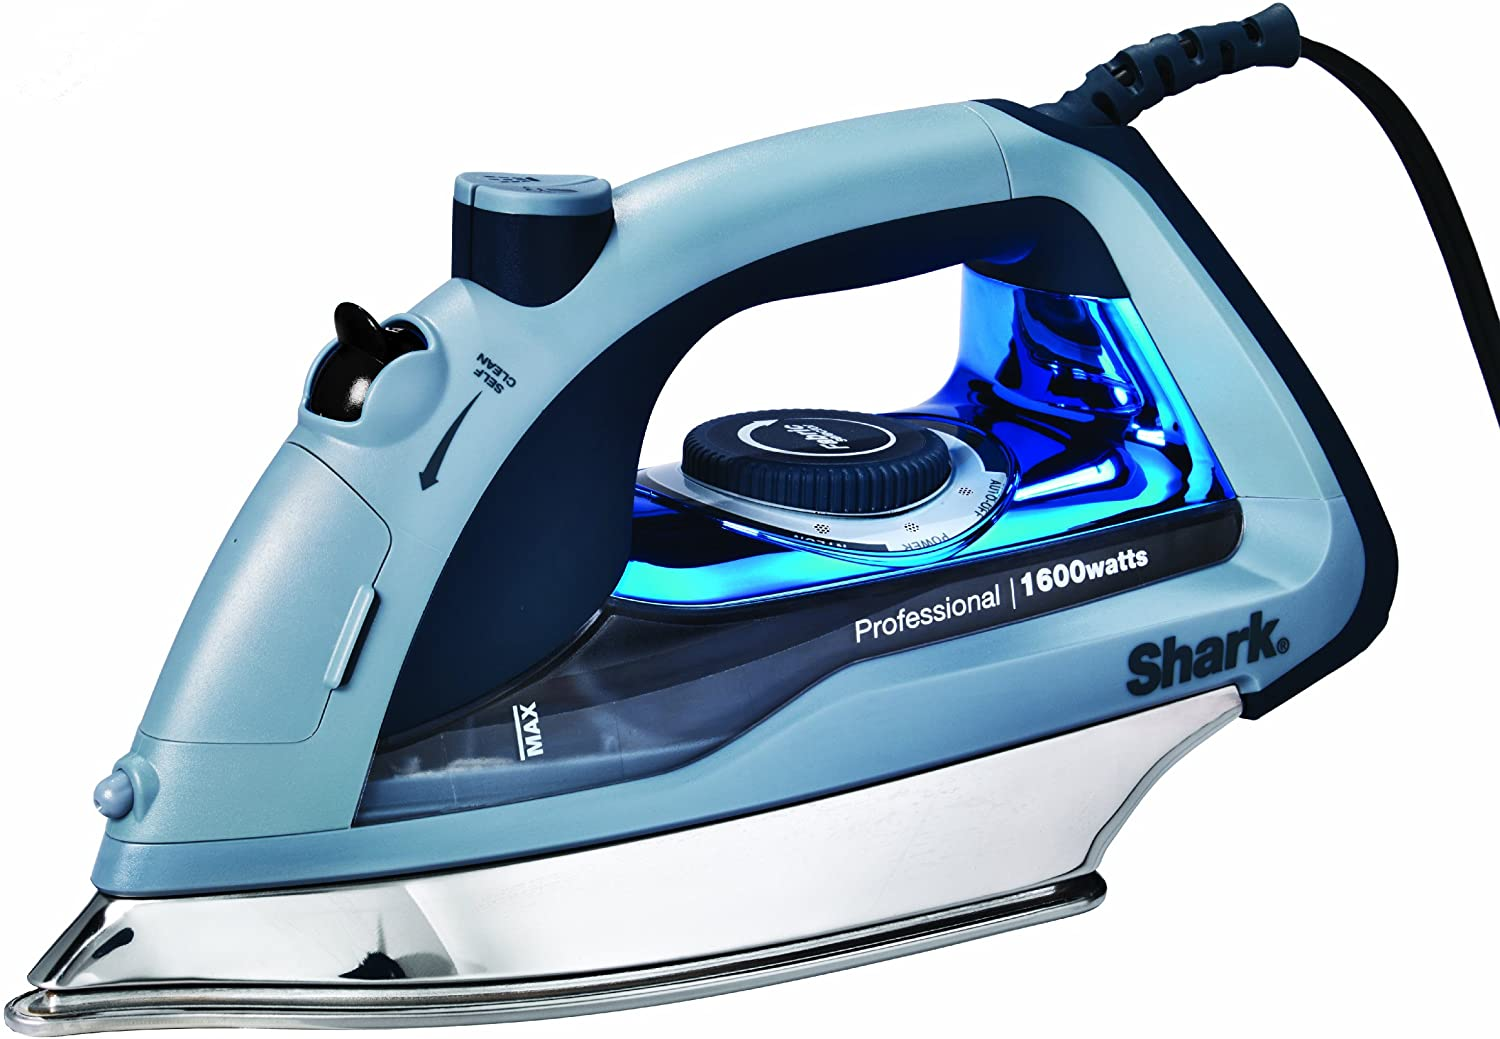 Amazon Com Shark Professional Garment Steamer With Auto Shut Off And Stainless Steel Soleplate 1600 Watts Electric Steam Iron Gi405 Blue Home Kitchen